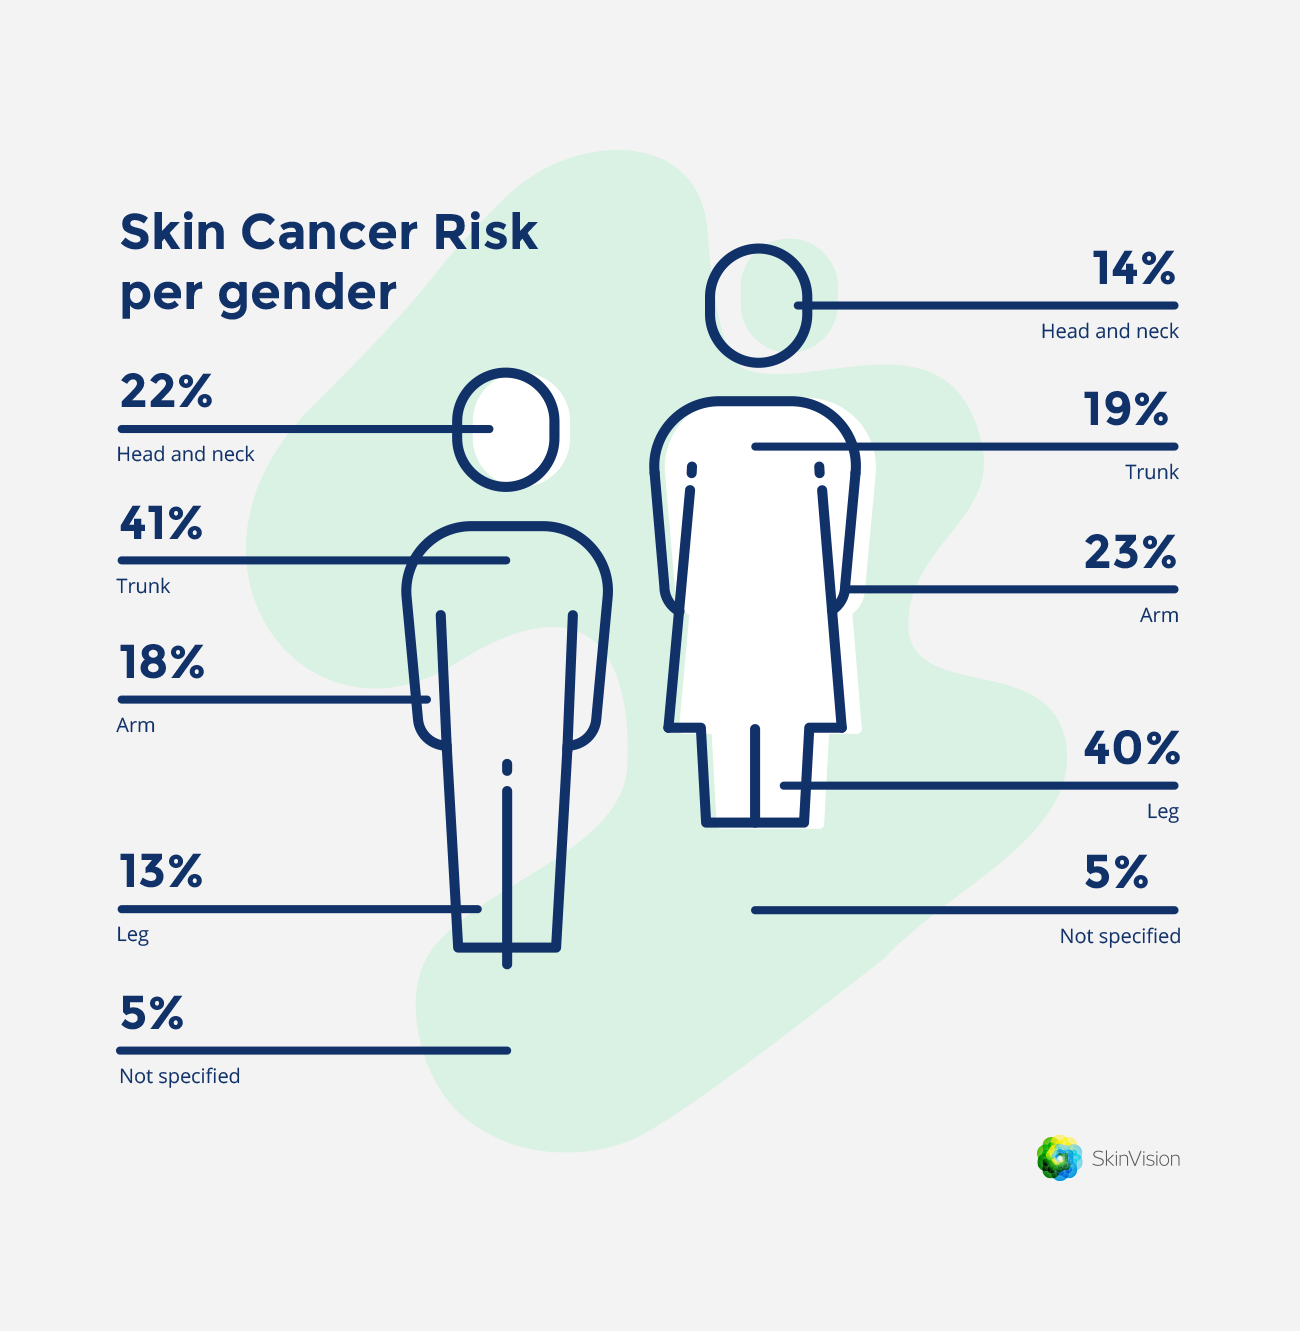 Common places to look for skin cancer | SkinVision Blog